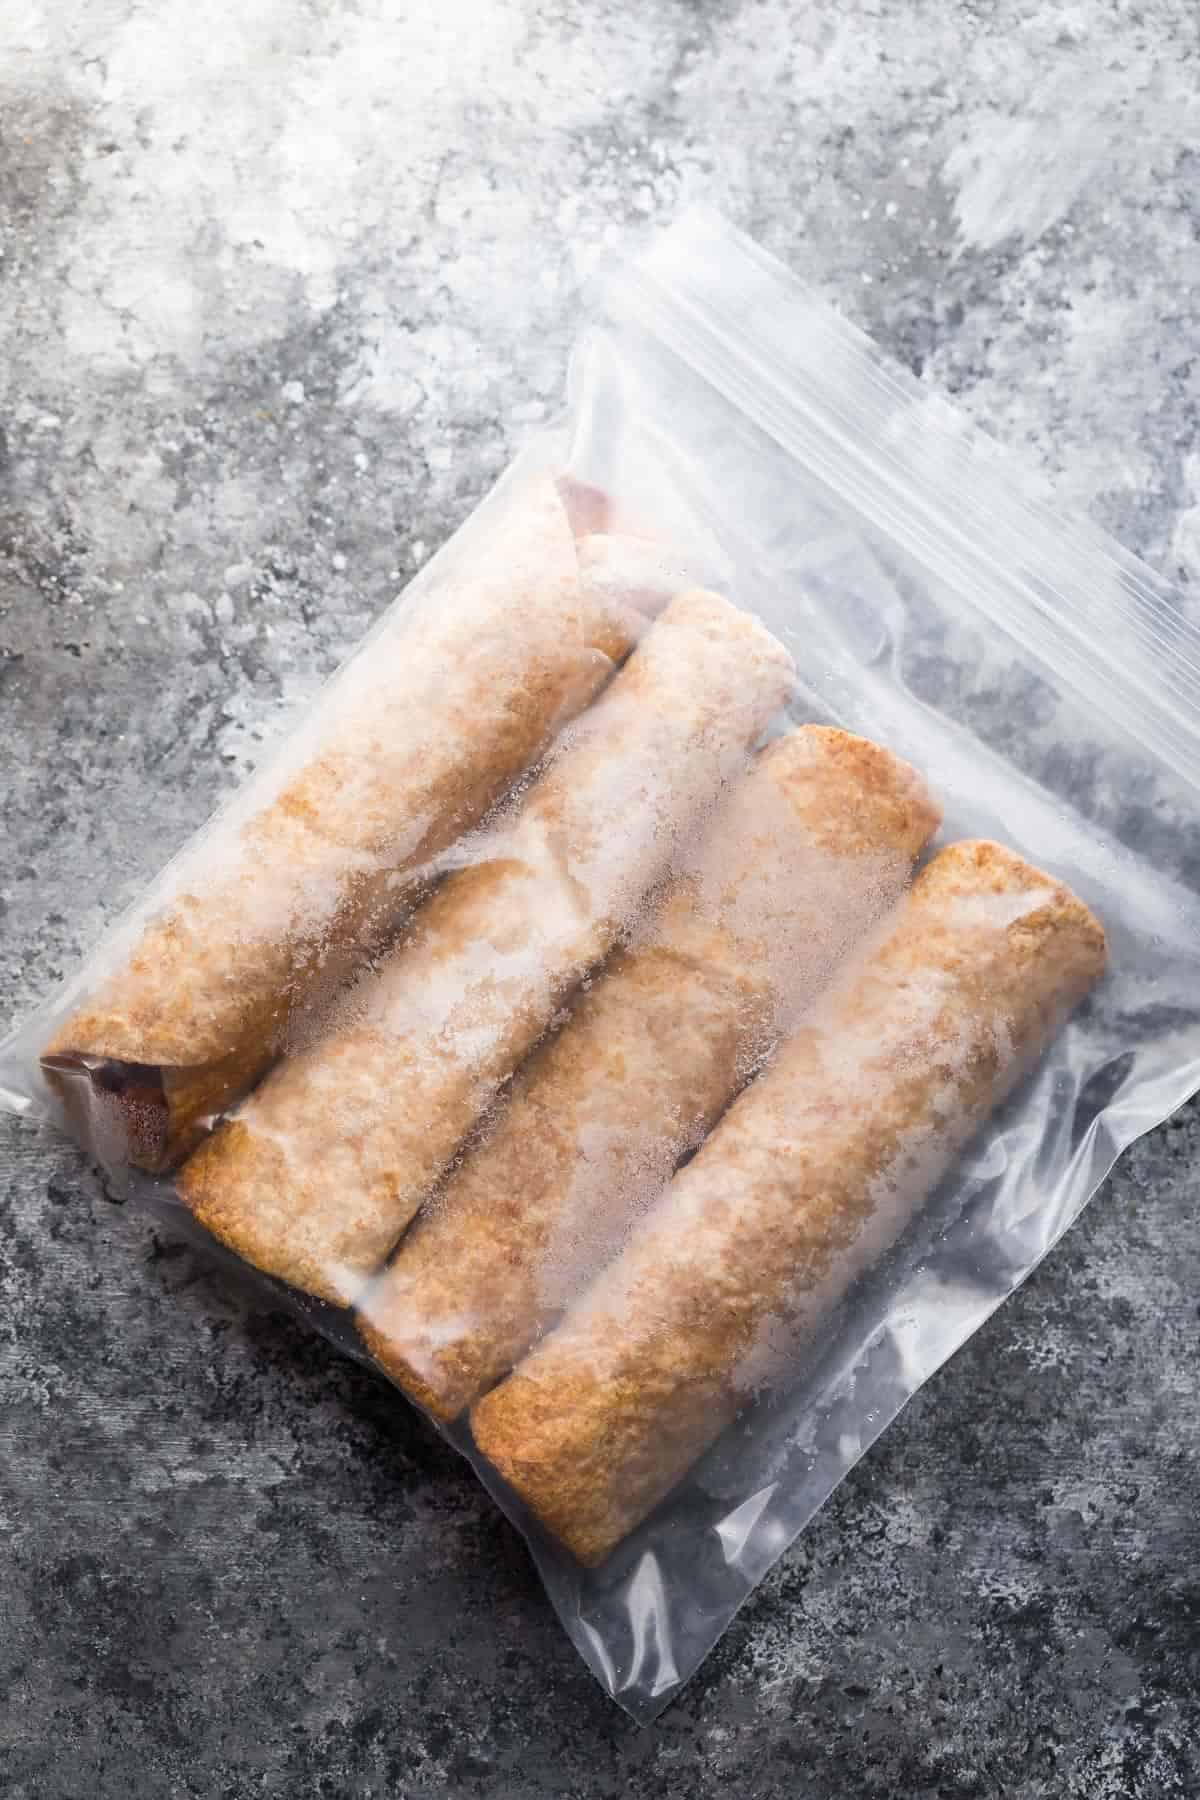 storing the baked taquitos in a ziplock bag to freeze